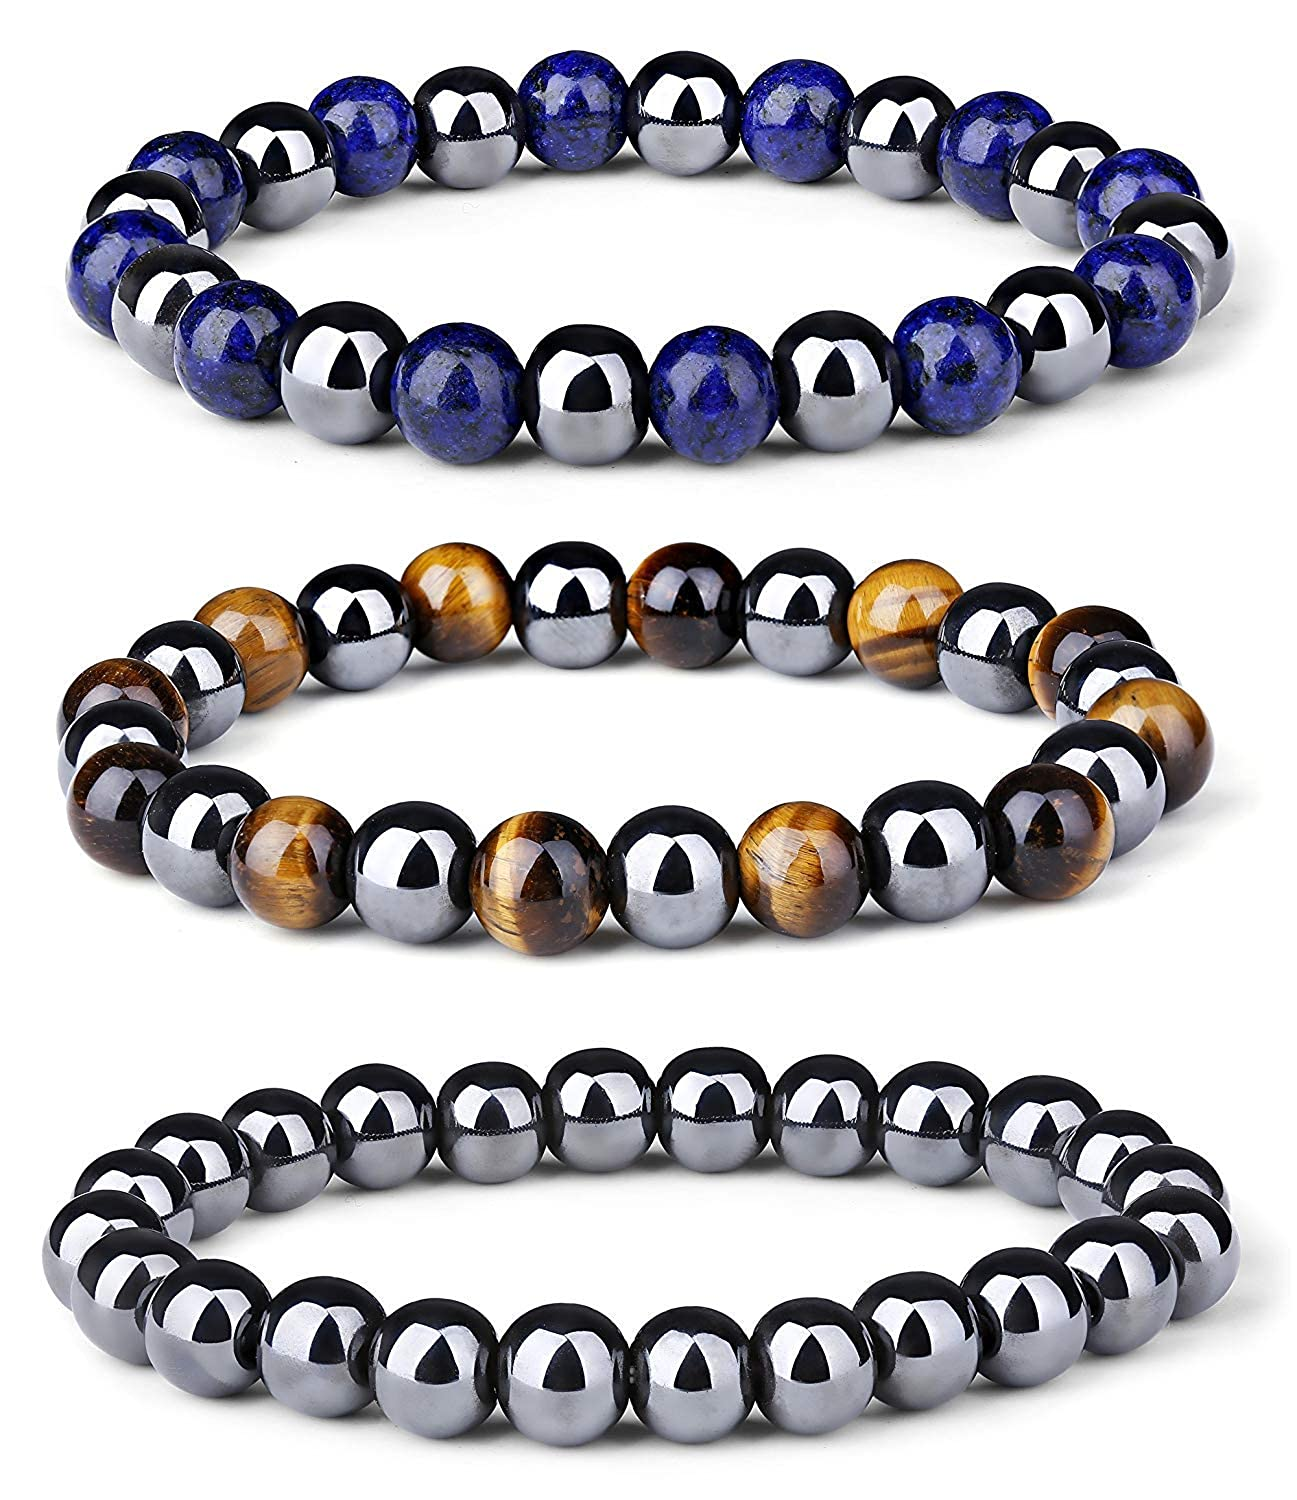 Thunaraz 3Pcs Hematite Therapy Beads Men Women Healing Energy Natural Stone Adjustable Bracelet Tiger Eye Stone TH-Y-B0017-1